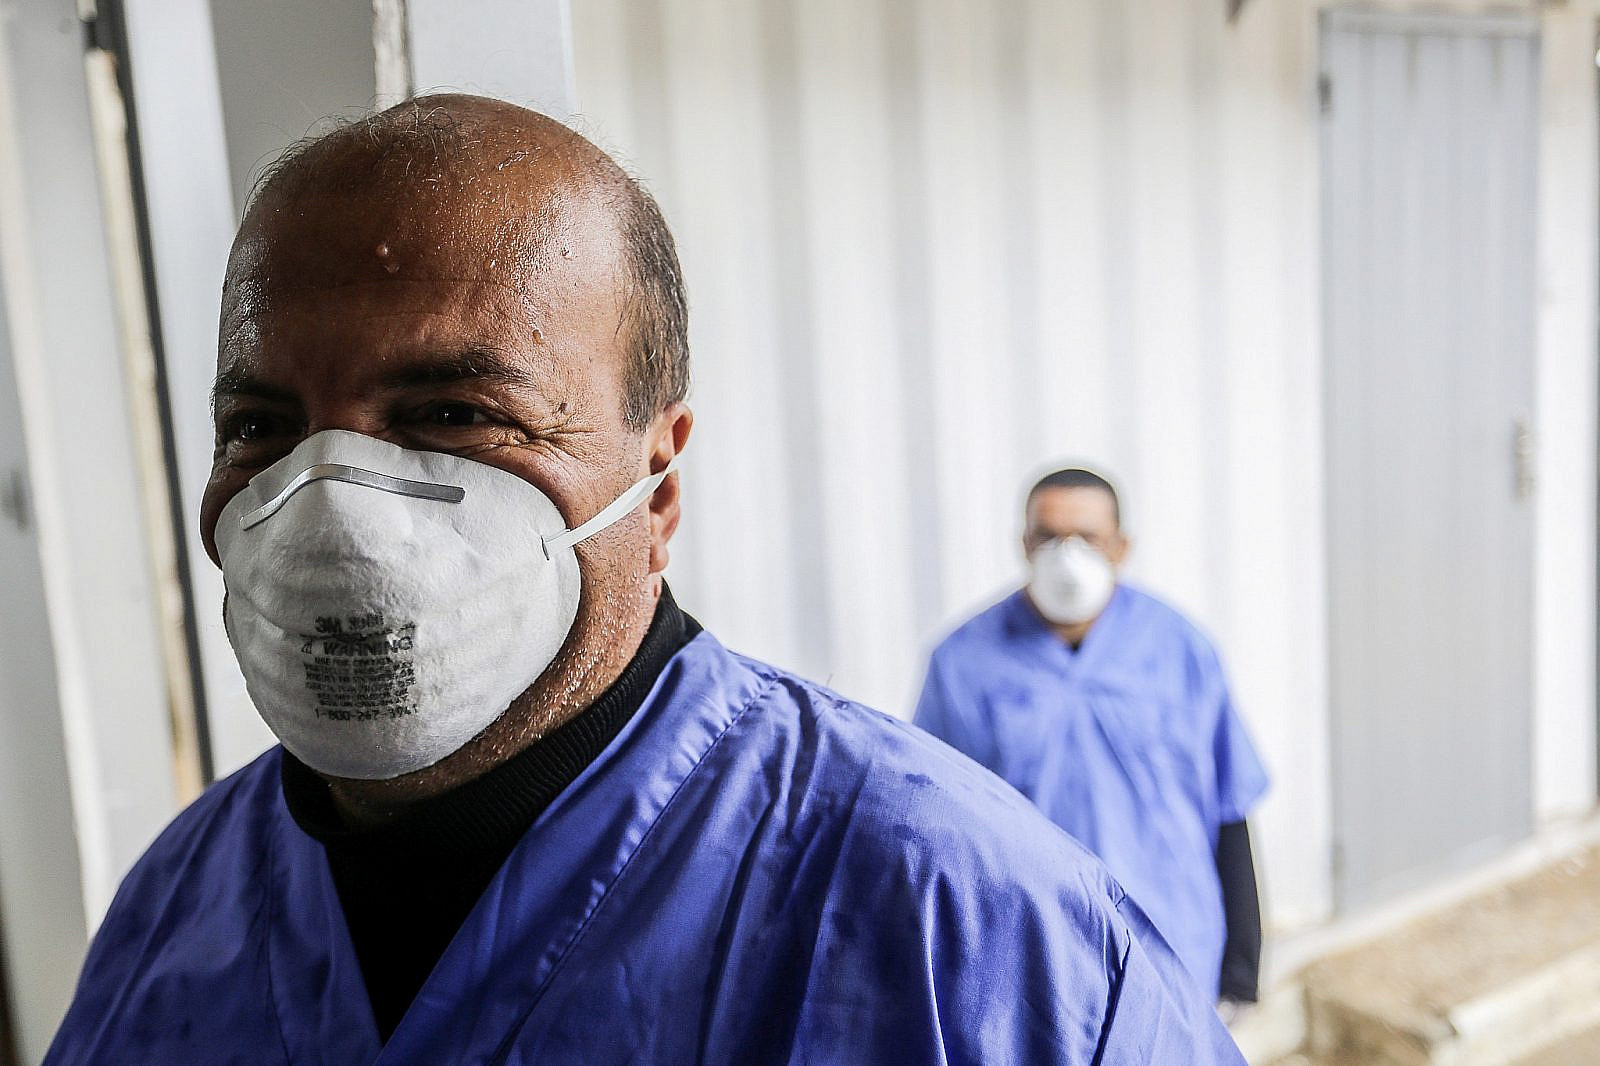 Palestinian workers wearing protective masks as they prepare the quarantine zone to test returning passengers for coronavirus, at Rafah border crossing in the Gaza Strip, February 16, 2020. (Abed Rahim Khatib/Flash90)